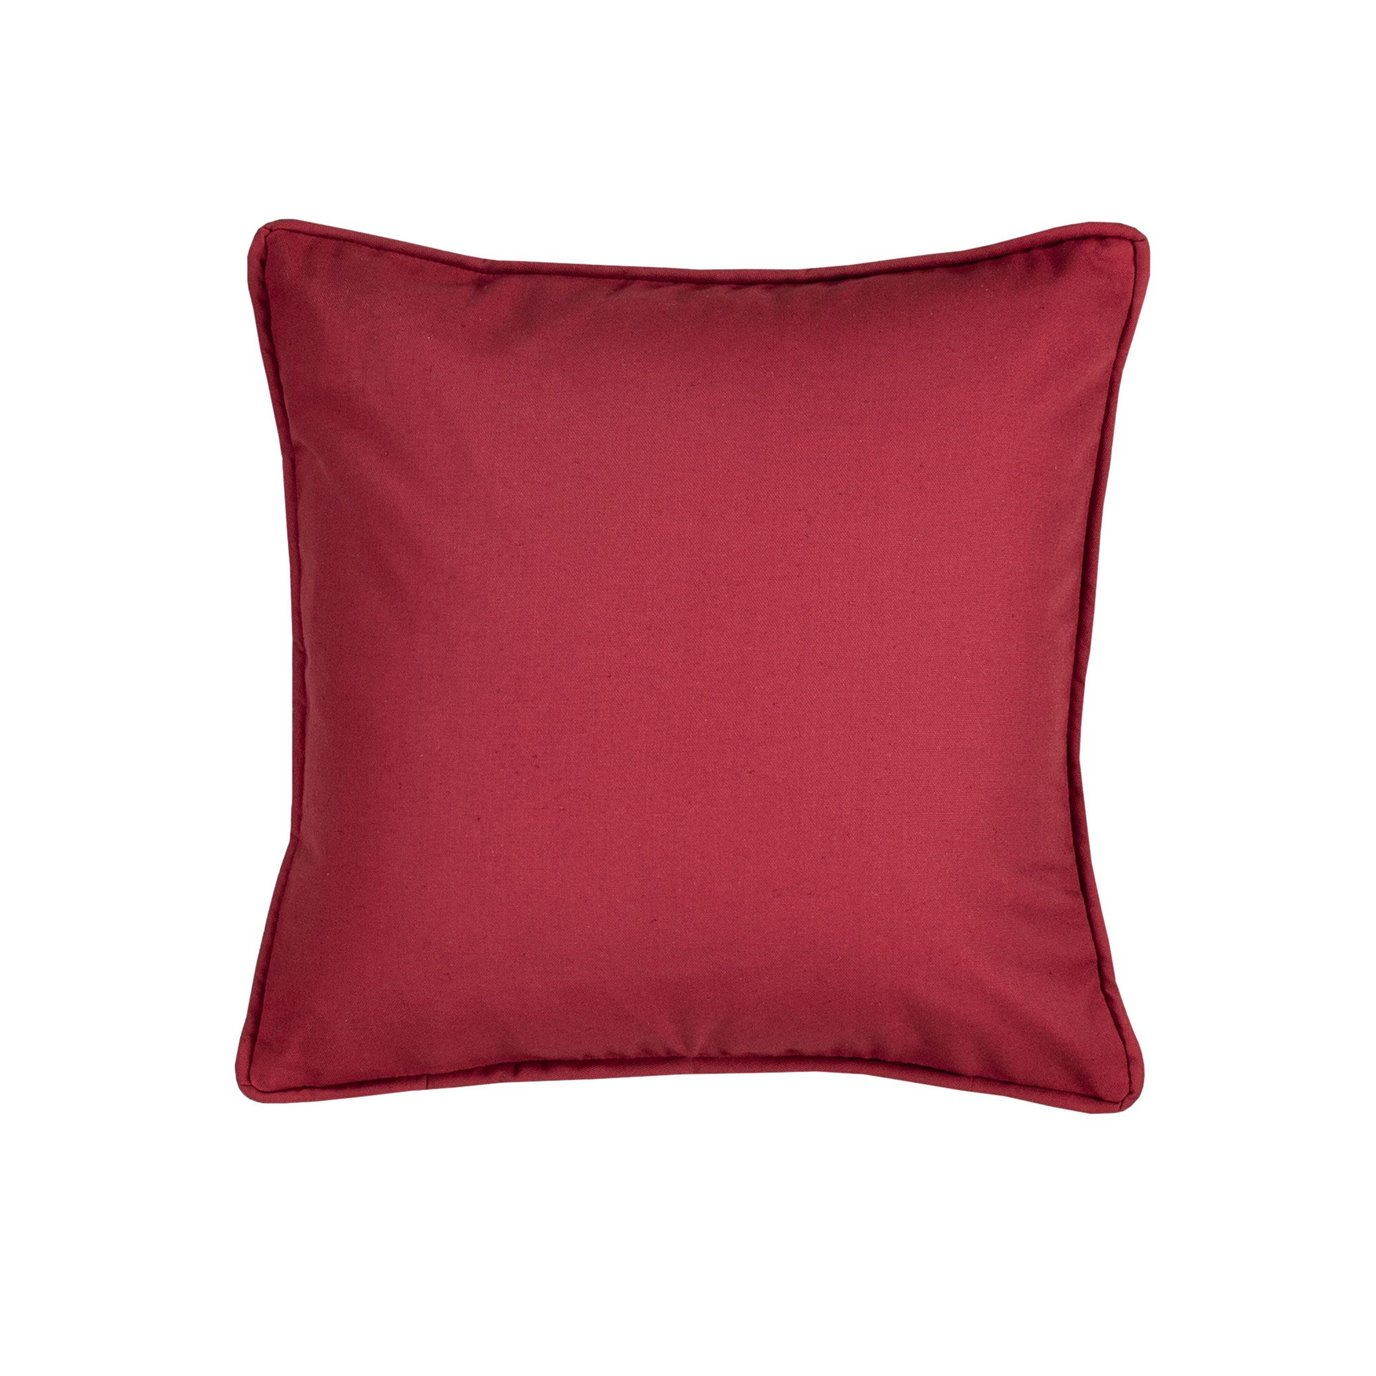 On Course Solid Red Square Pillow